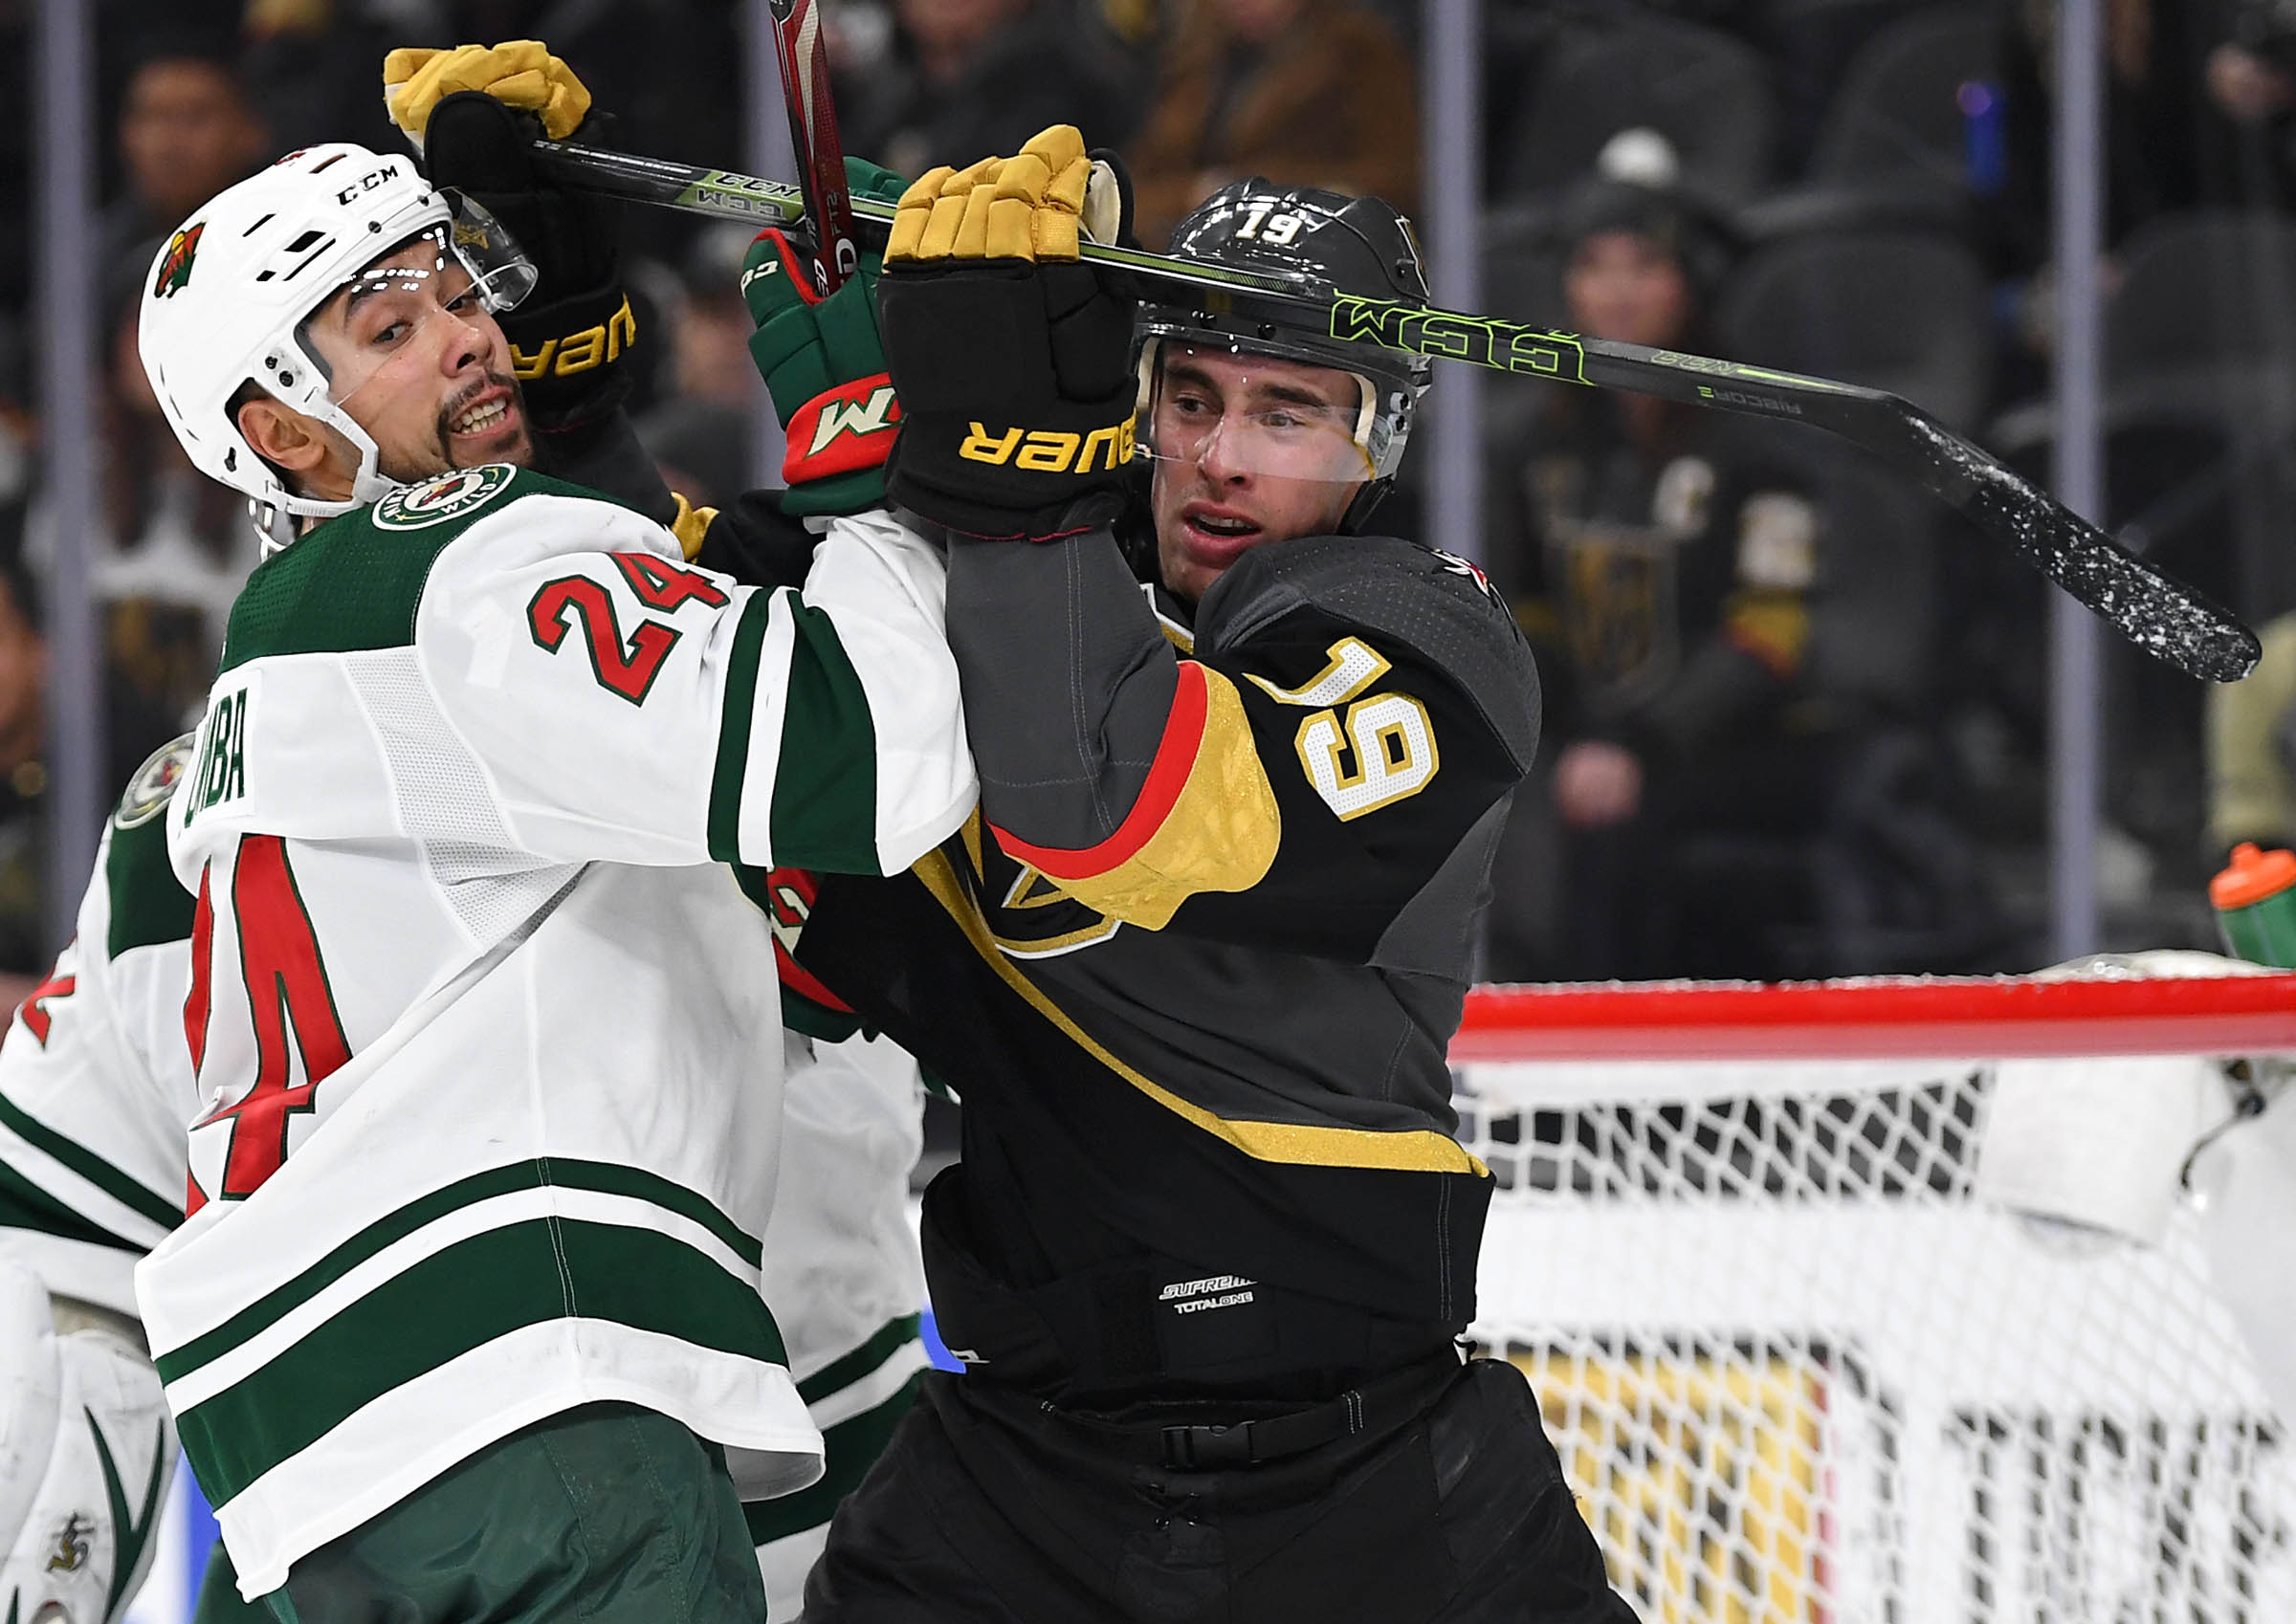 Game Preview: Minnesota Wild vs. Vegas Golden Knights 3/3/21 @ 9:00PM CST at T-Mobile Arena